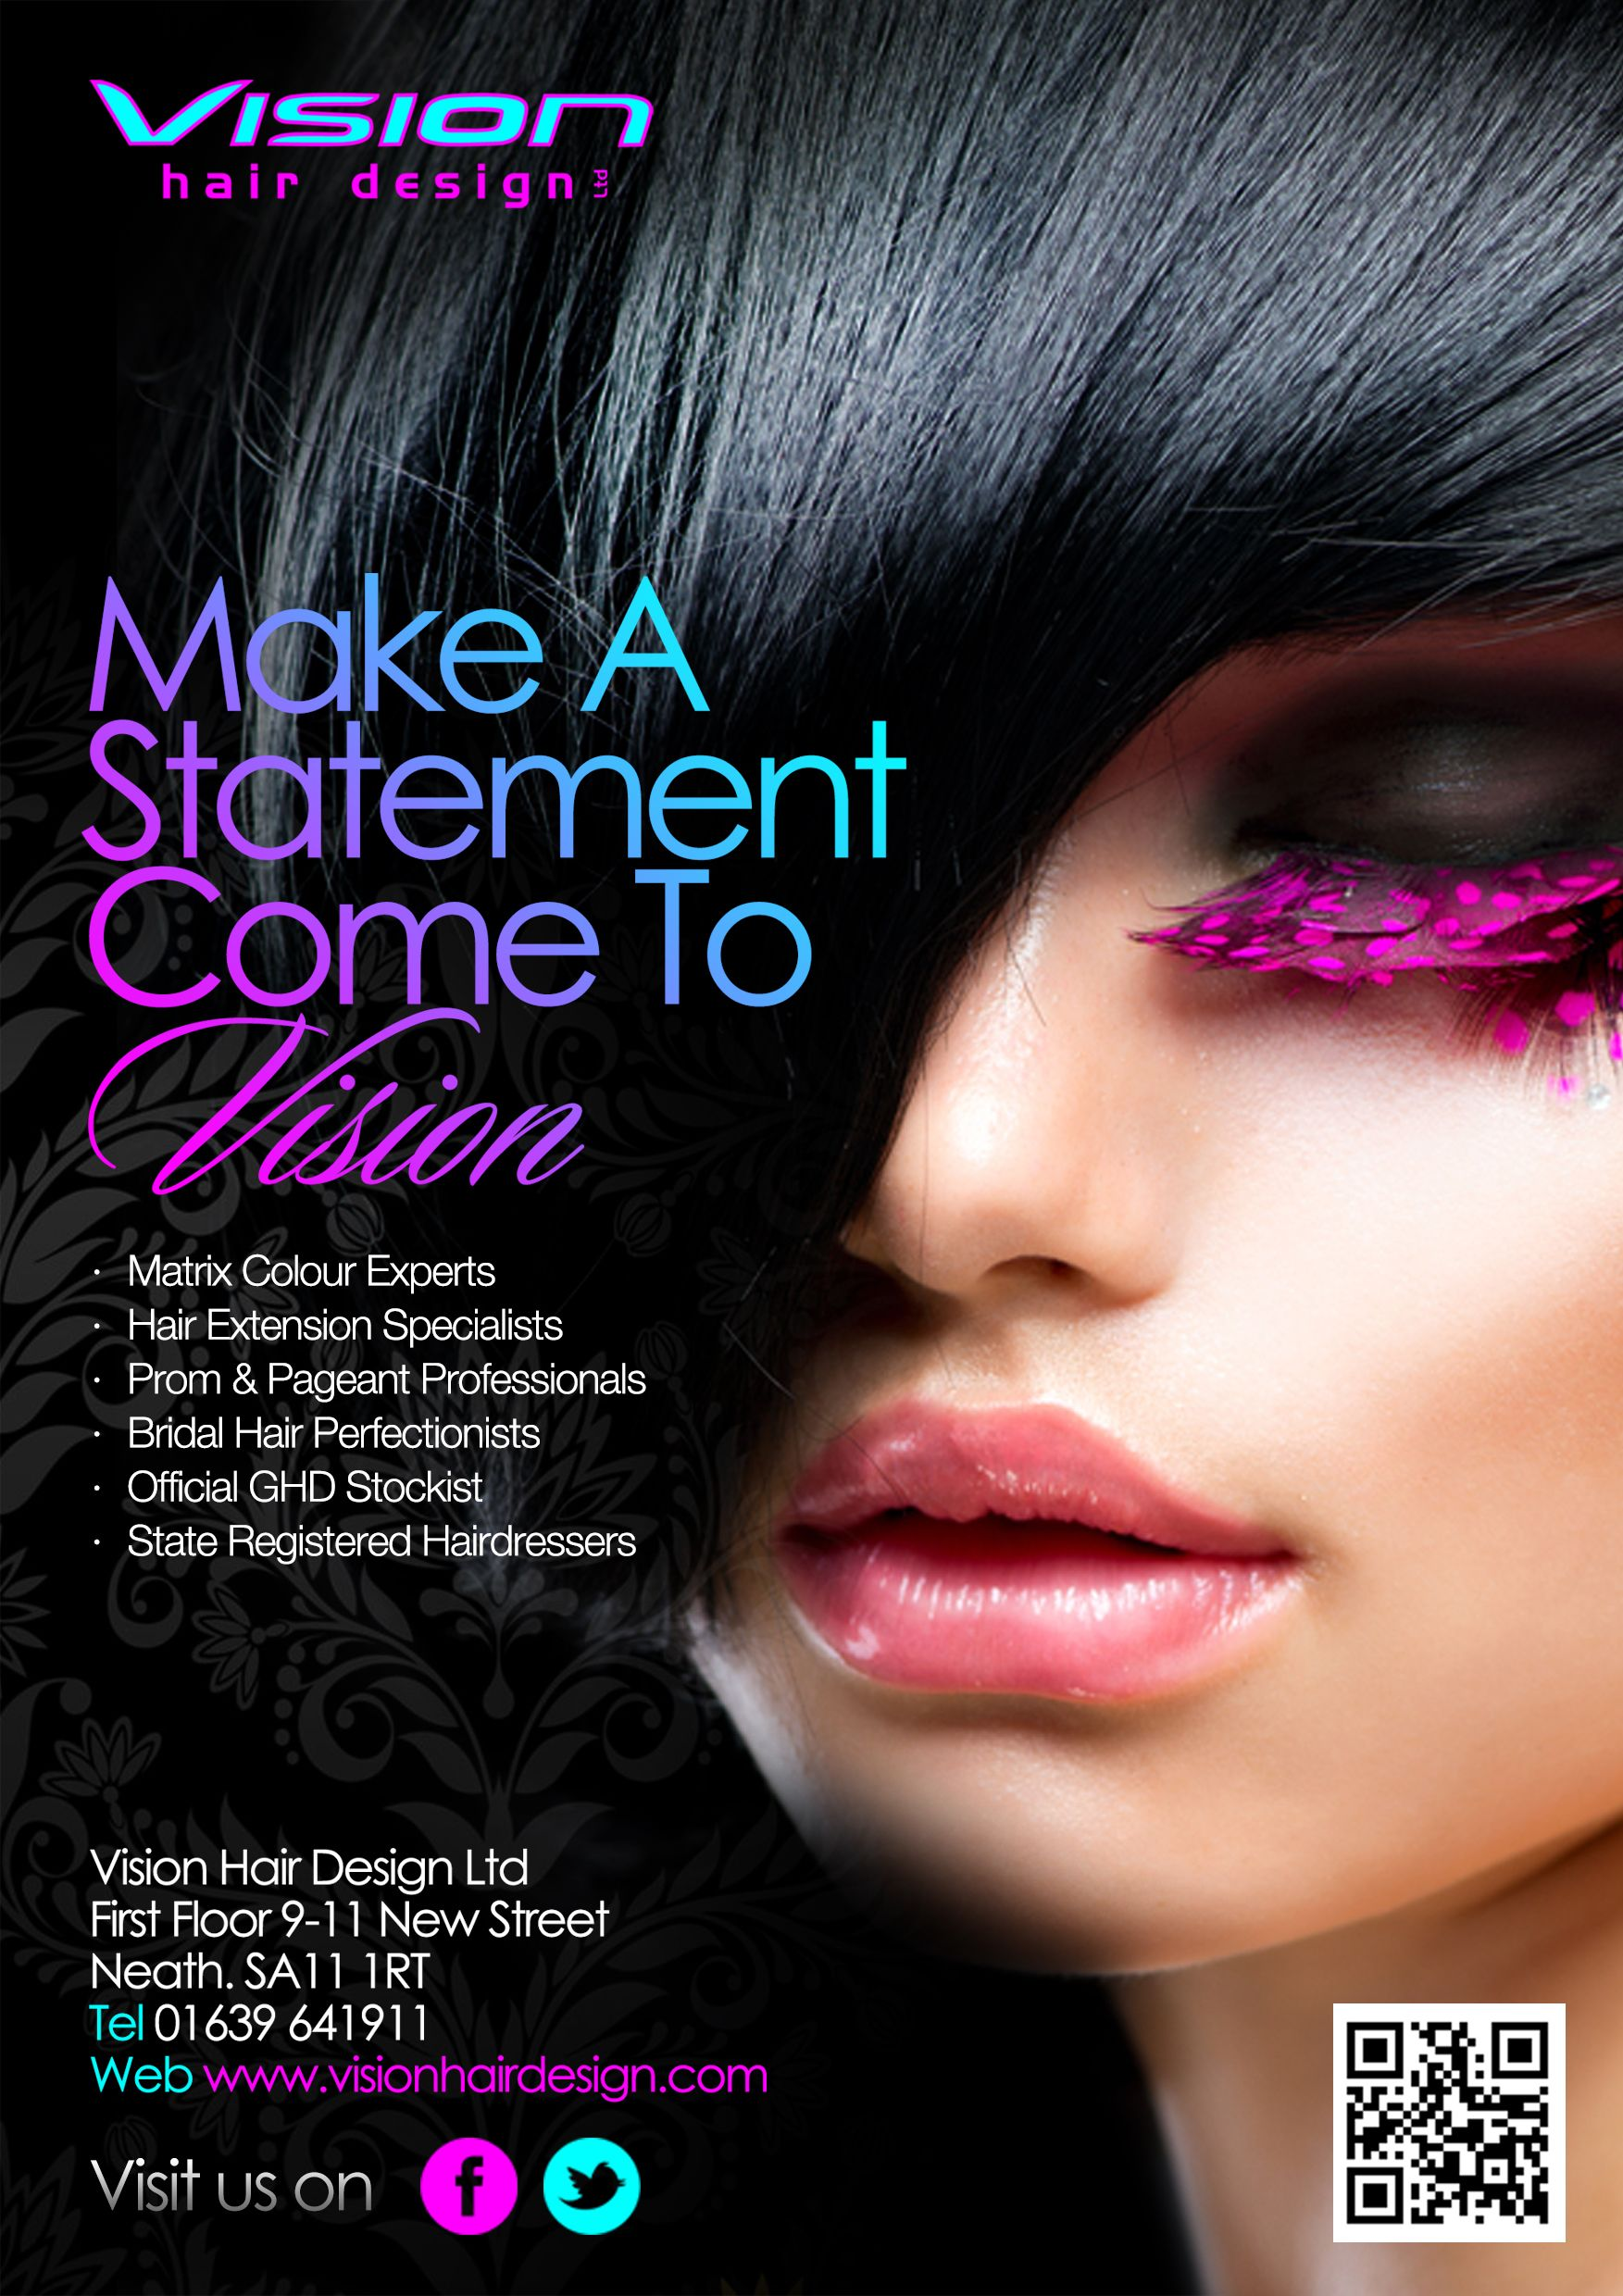 hair salon advertising flyers - Google Search | Design | Pinterest ...